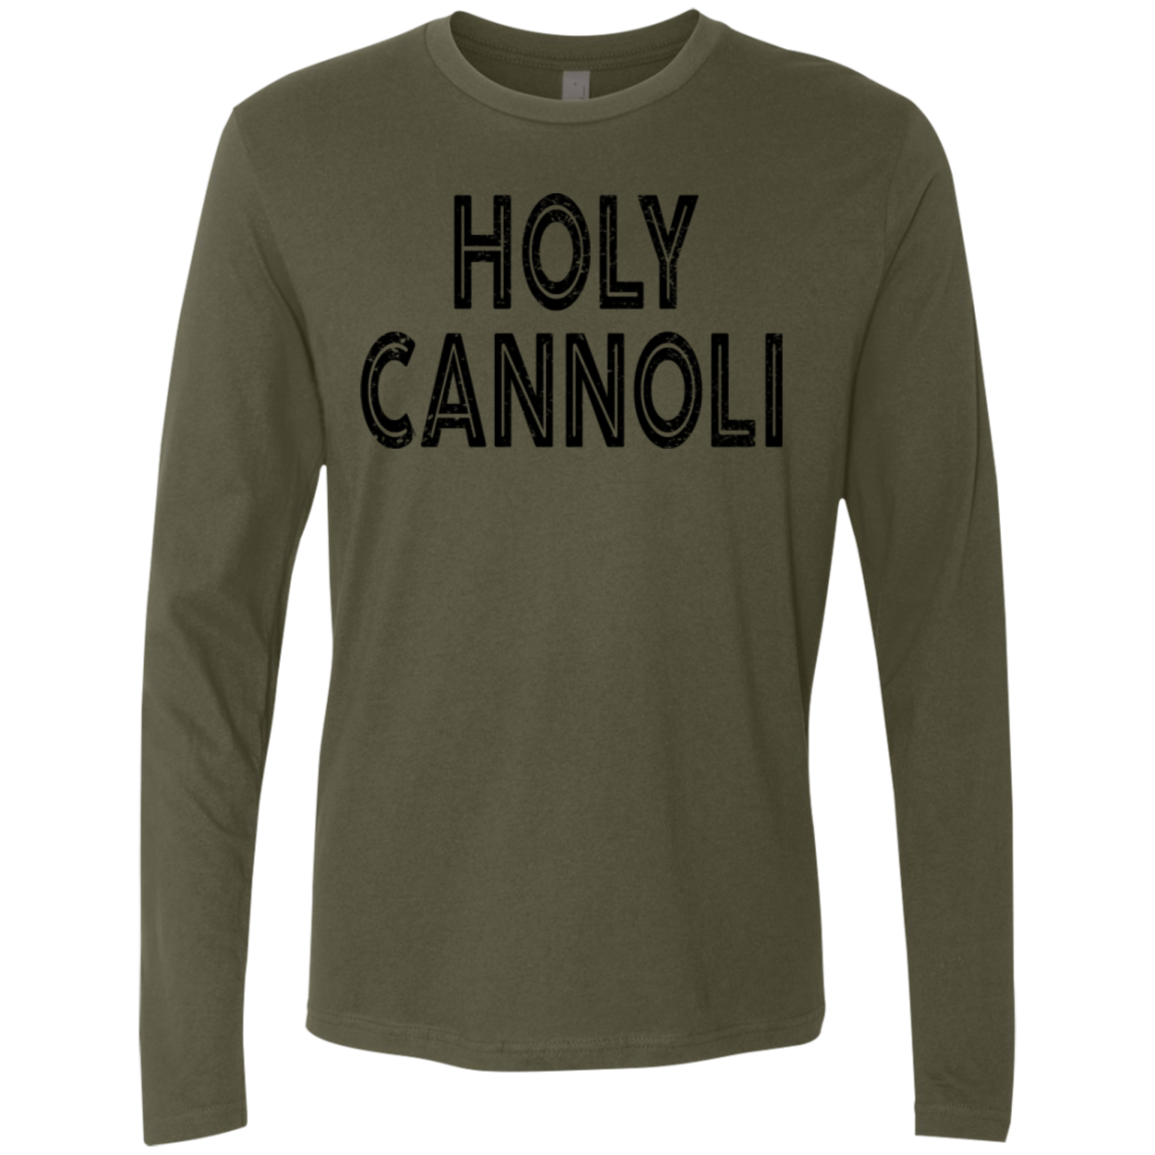 Holy Cannoli Men's Long Sleeve Tee